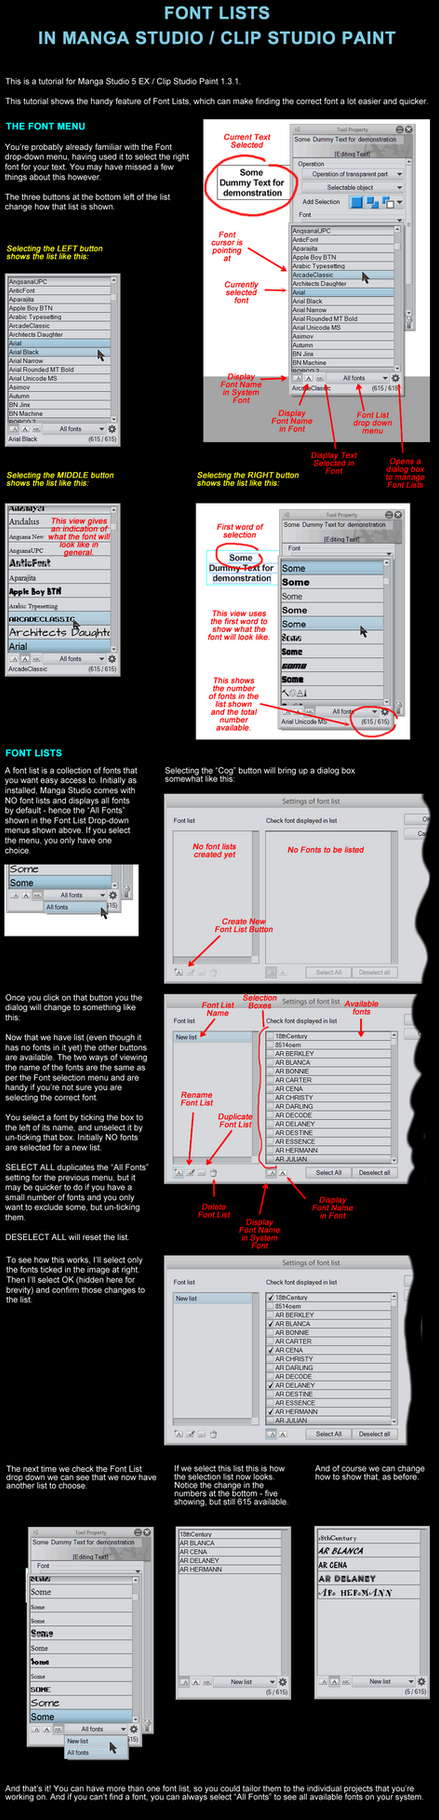 Font Lists in Manga Studio by LauraSeabrook